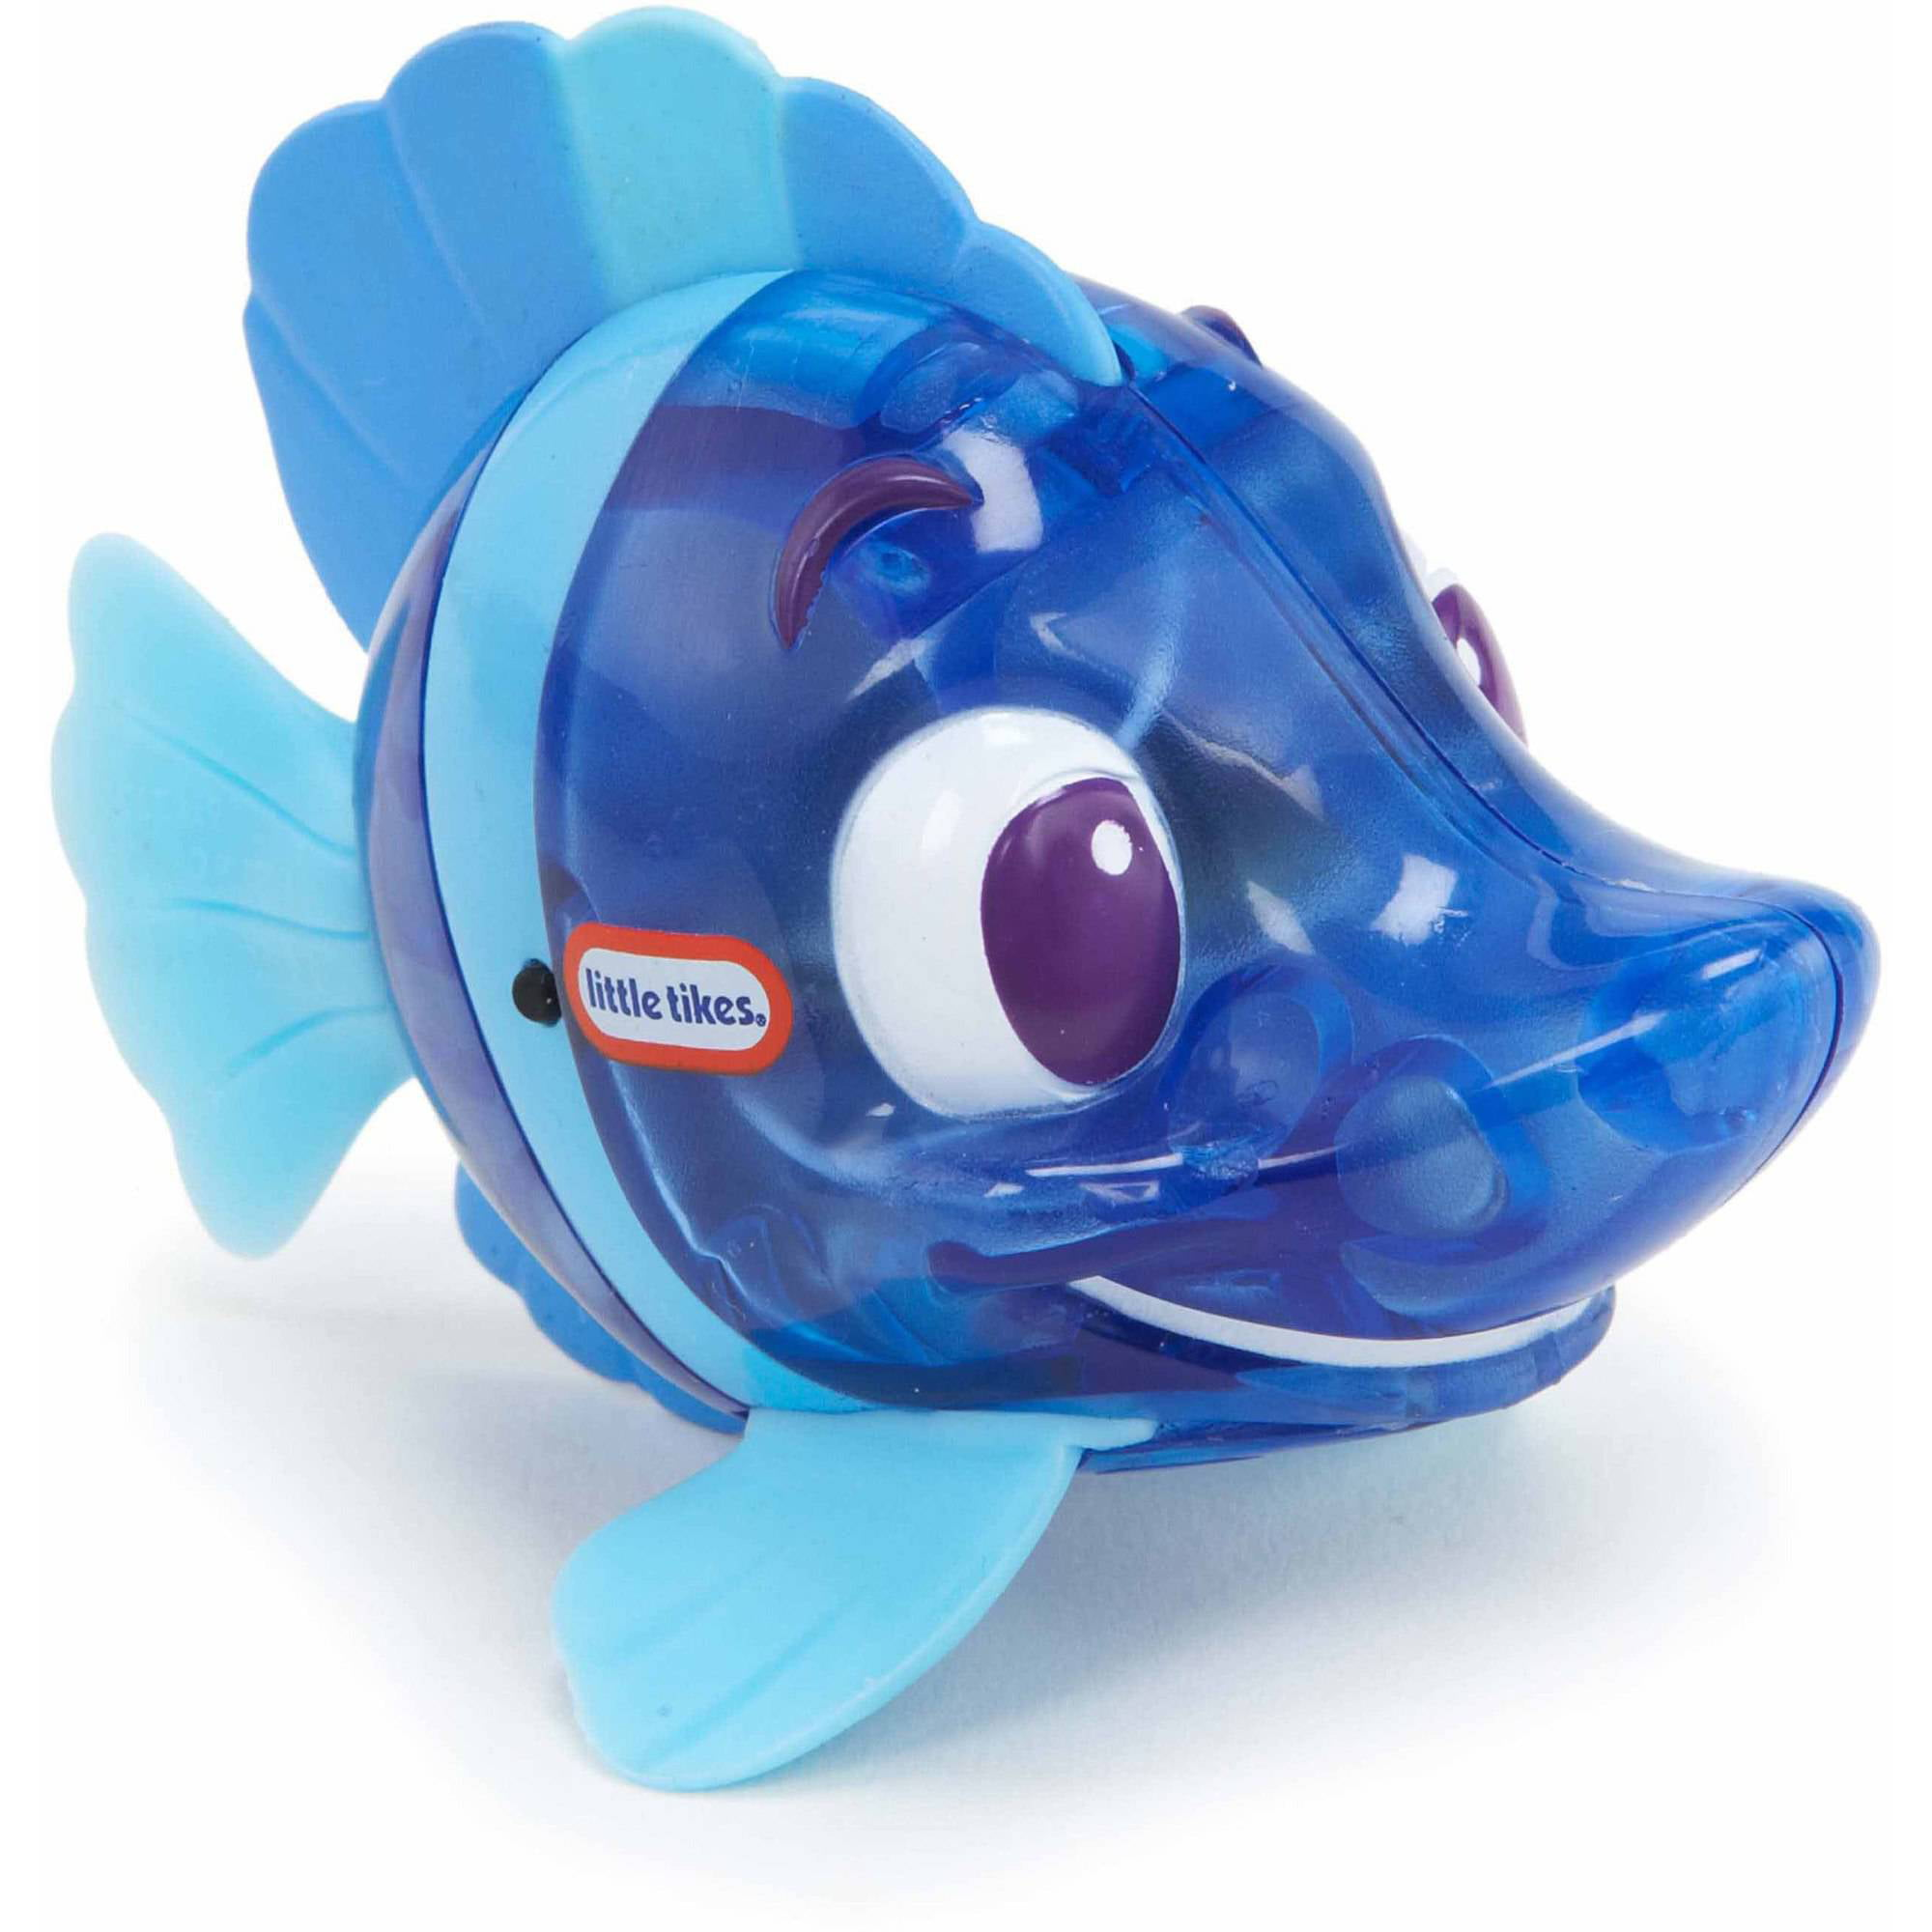 Little Tikes Sparkle Bay Flicker Fish, Damsel Fish by Little Tikes